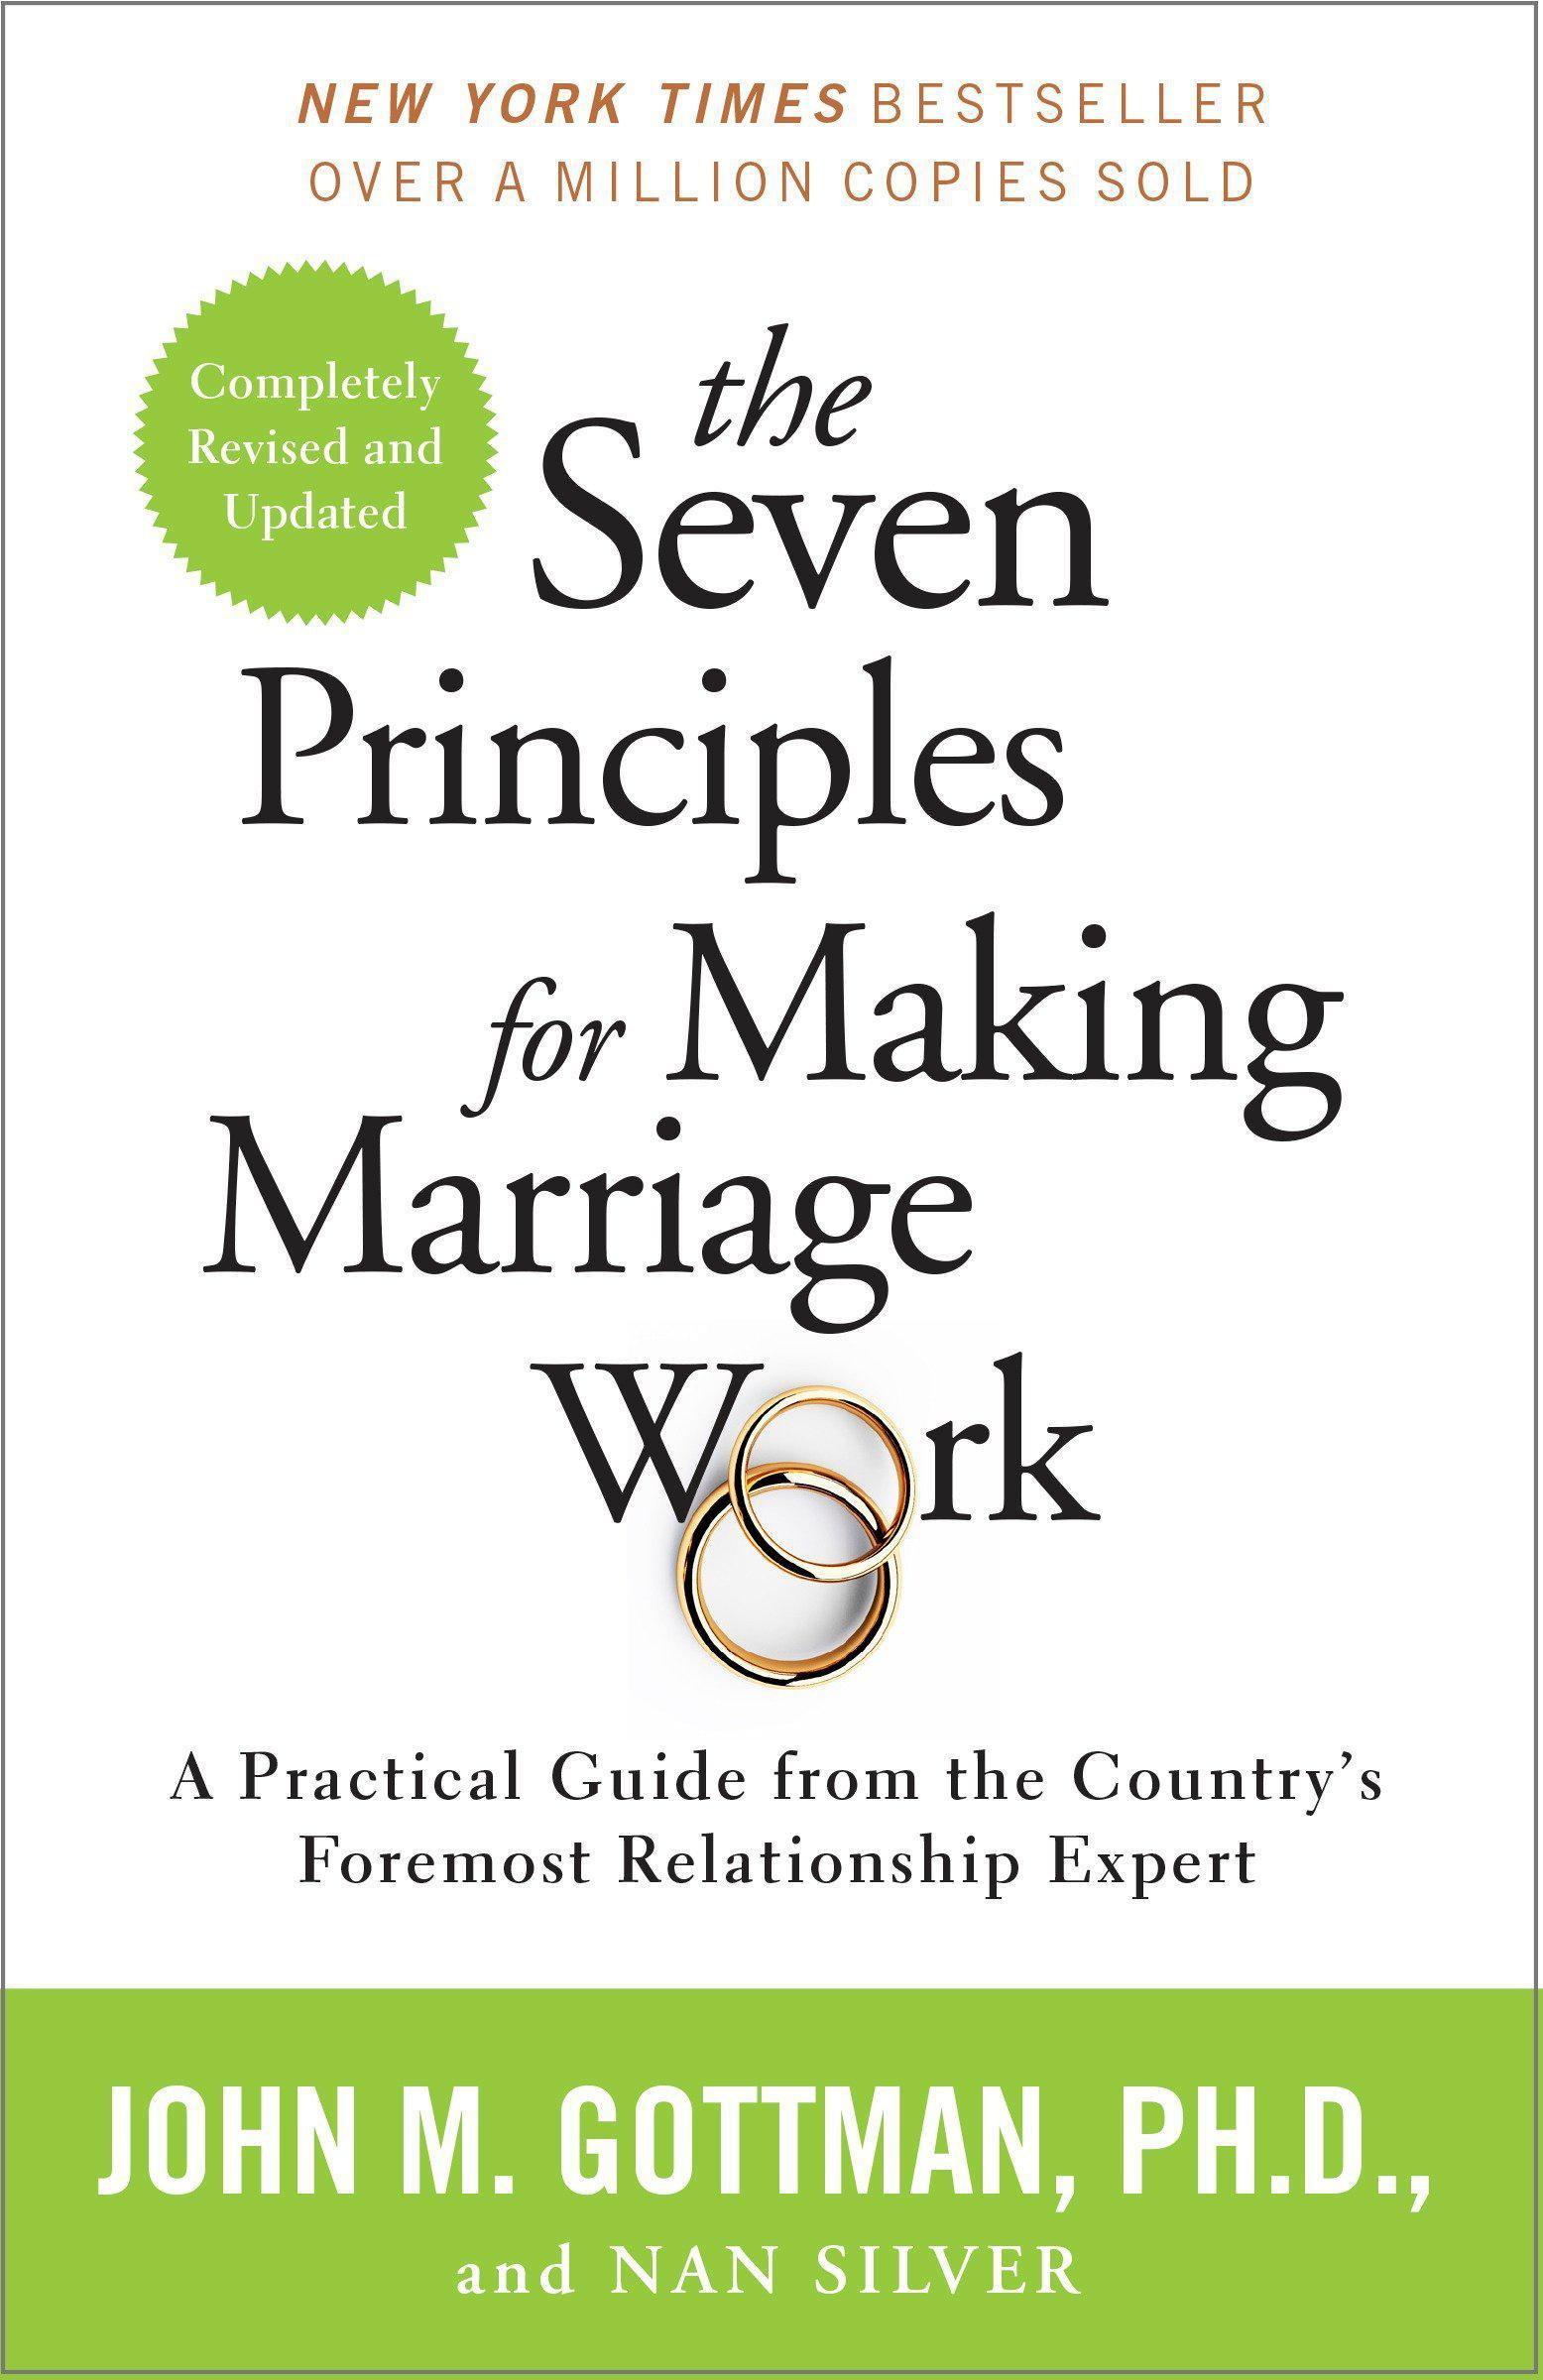 7 Principals for Making Marriage Work